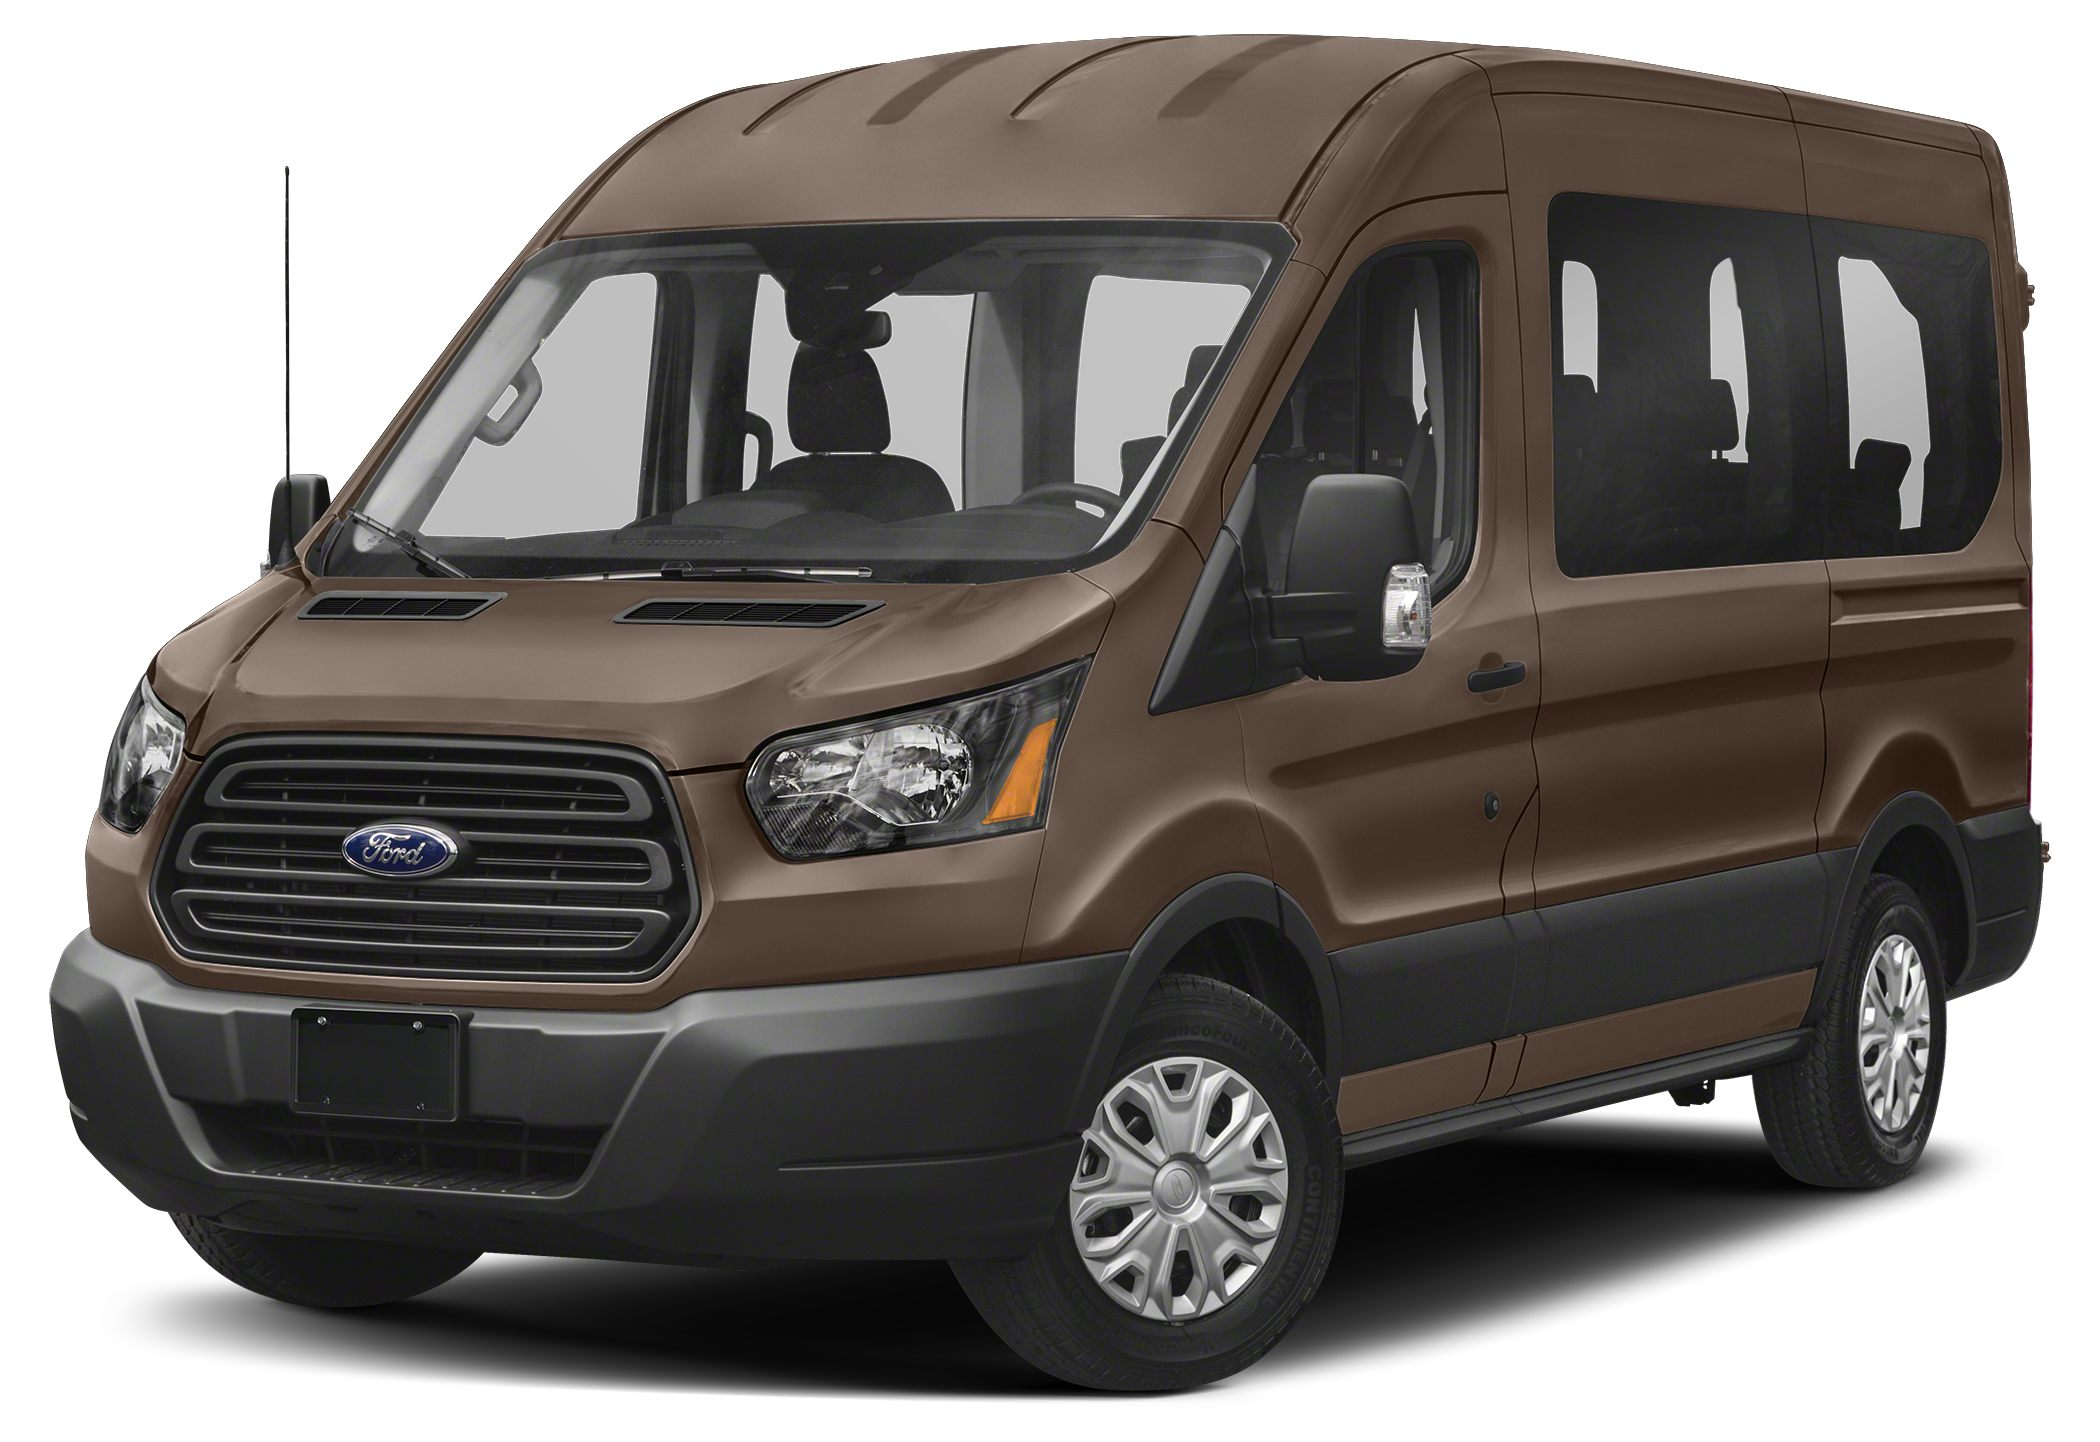 Ford Transit 150 >> 2019 Ford Transit 150 Xl W Sliding Pass Side Cargo Door Low Roof Passenger Van 129 9 In Wb Pictures